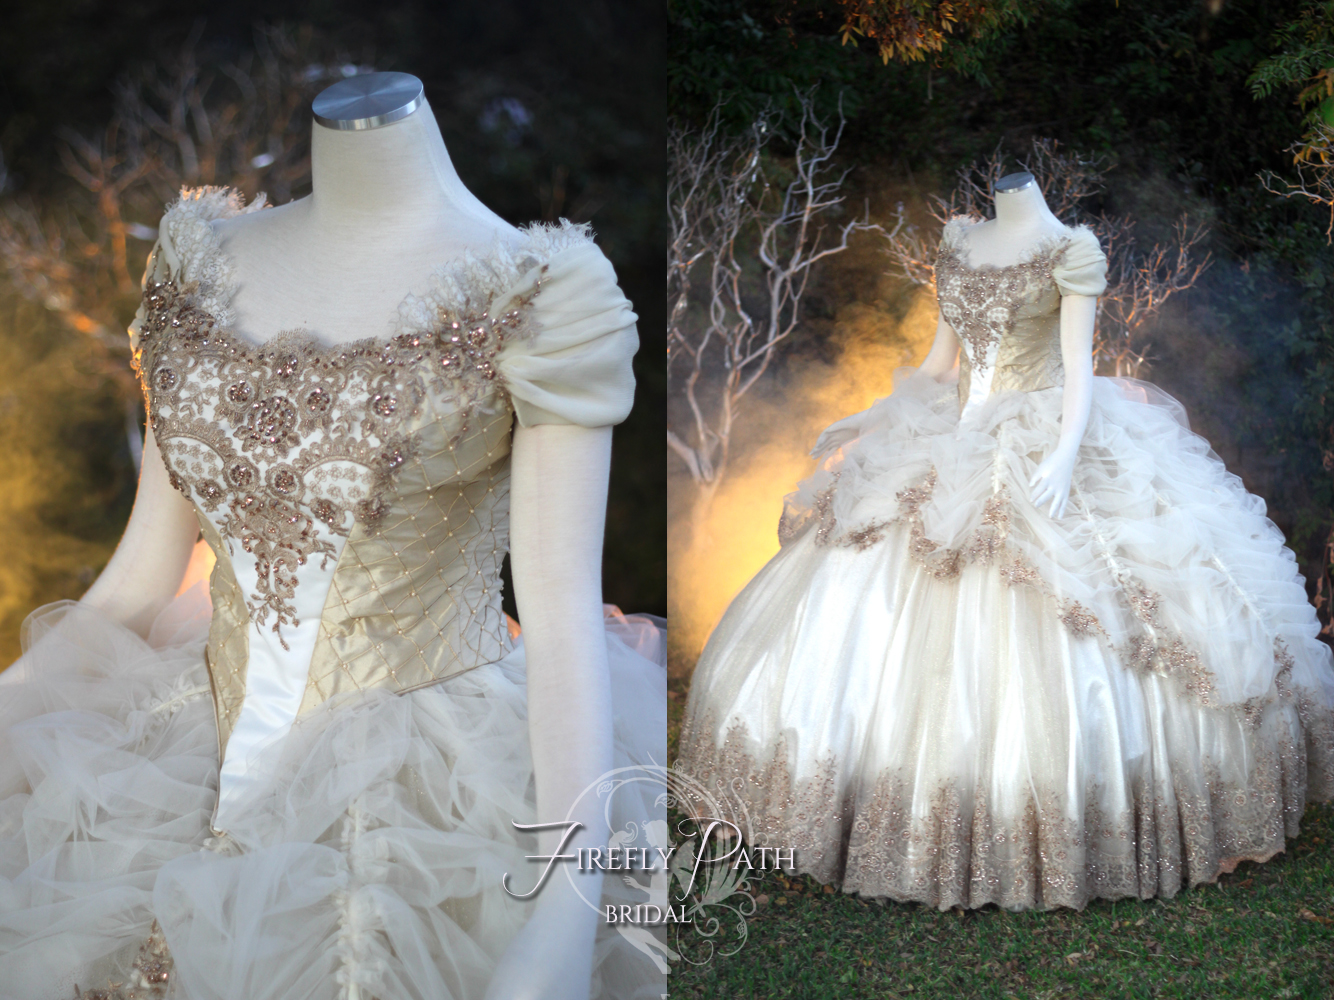 Beauty And The Beast Wedding Dress: Beauty And The Beast Wedding Gown By Lillyxandra On DeviantArt